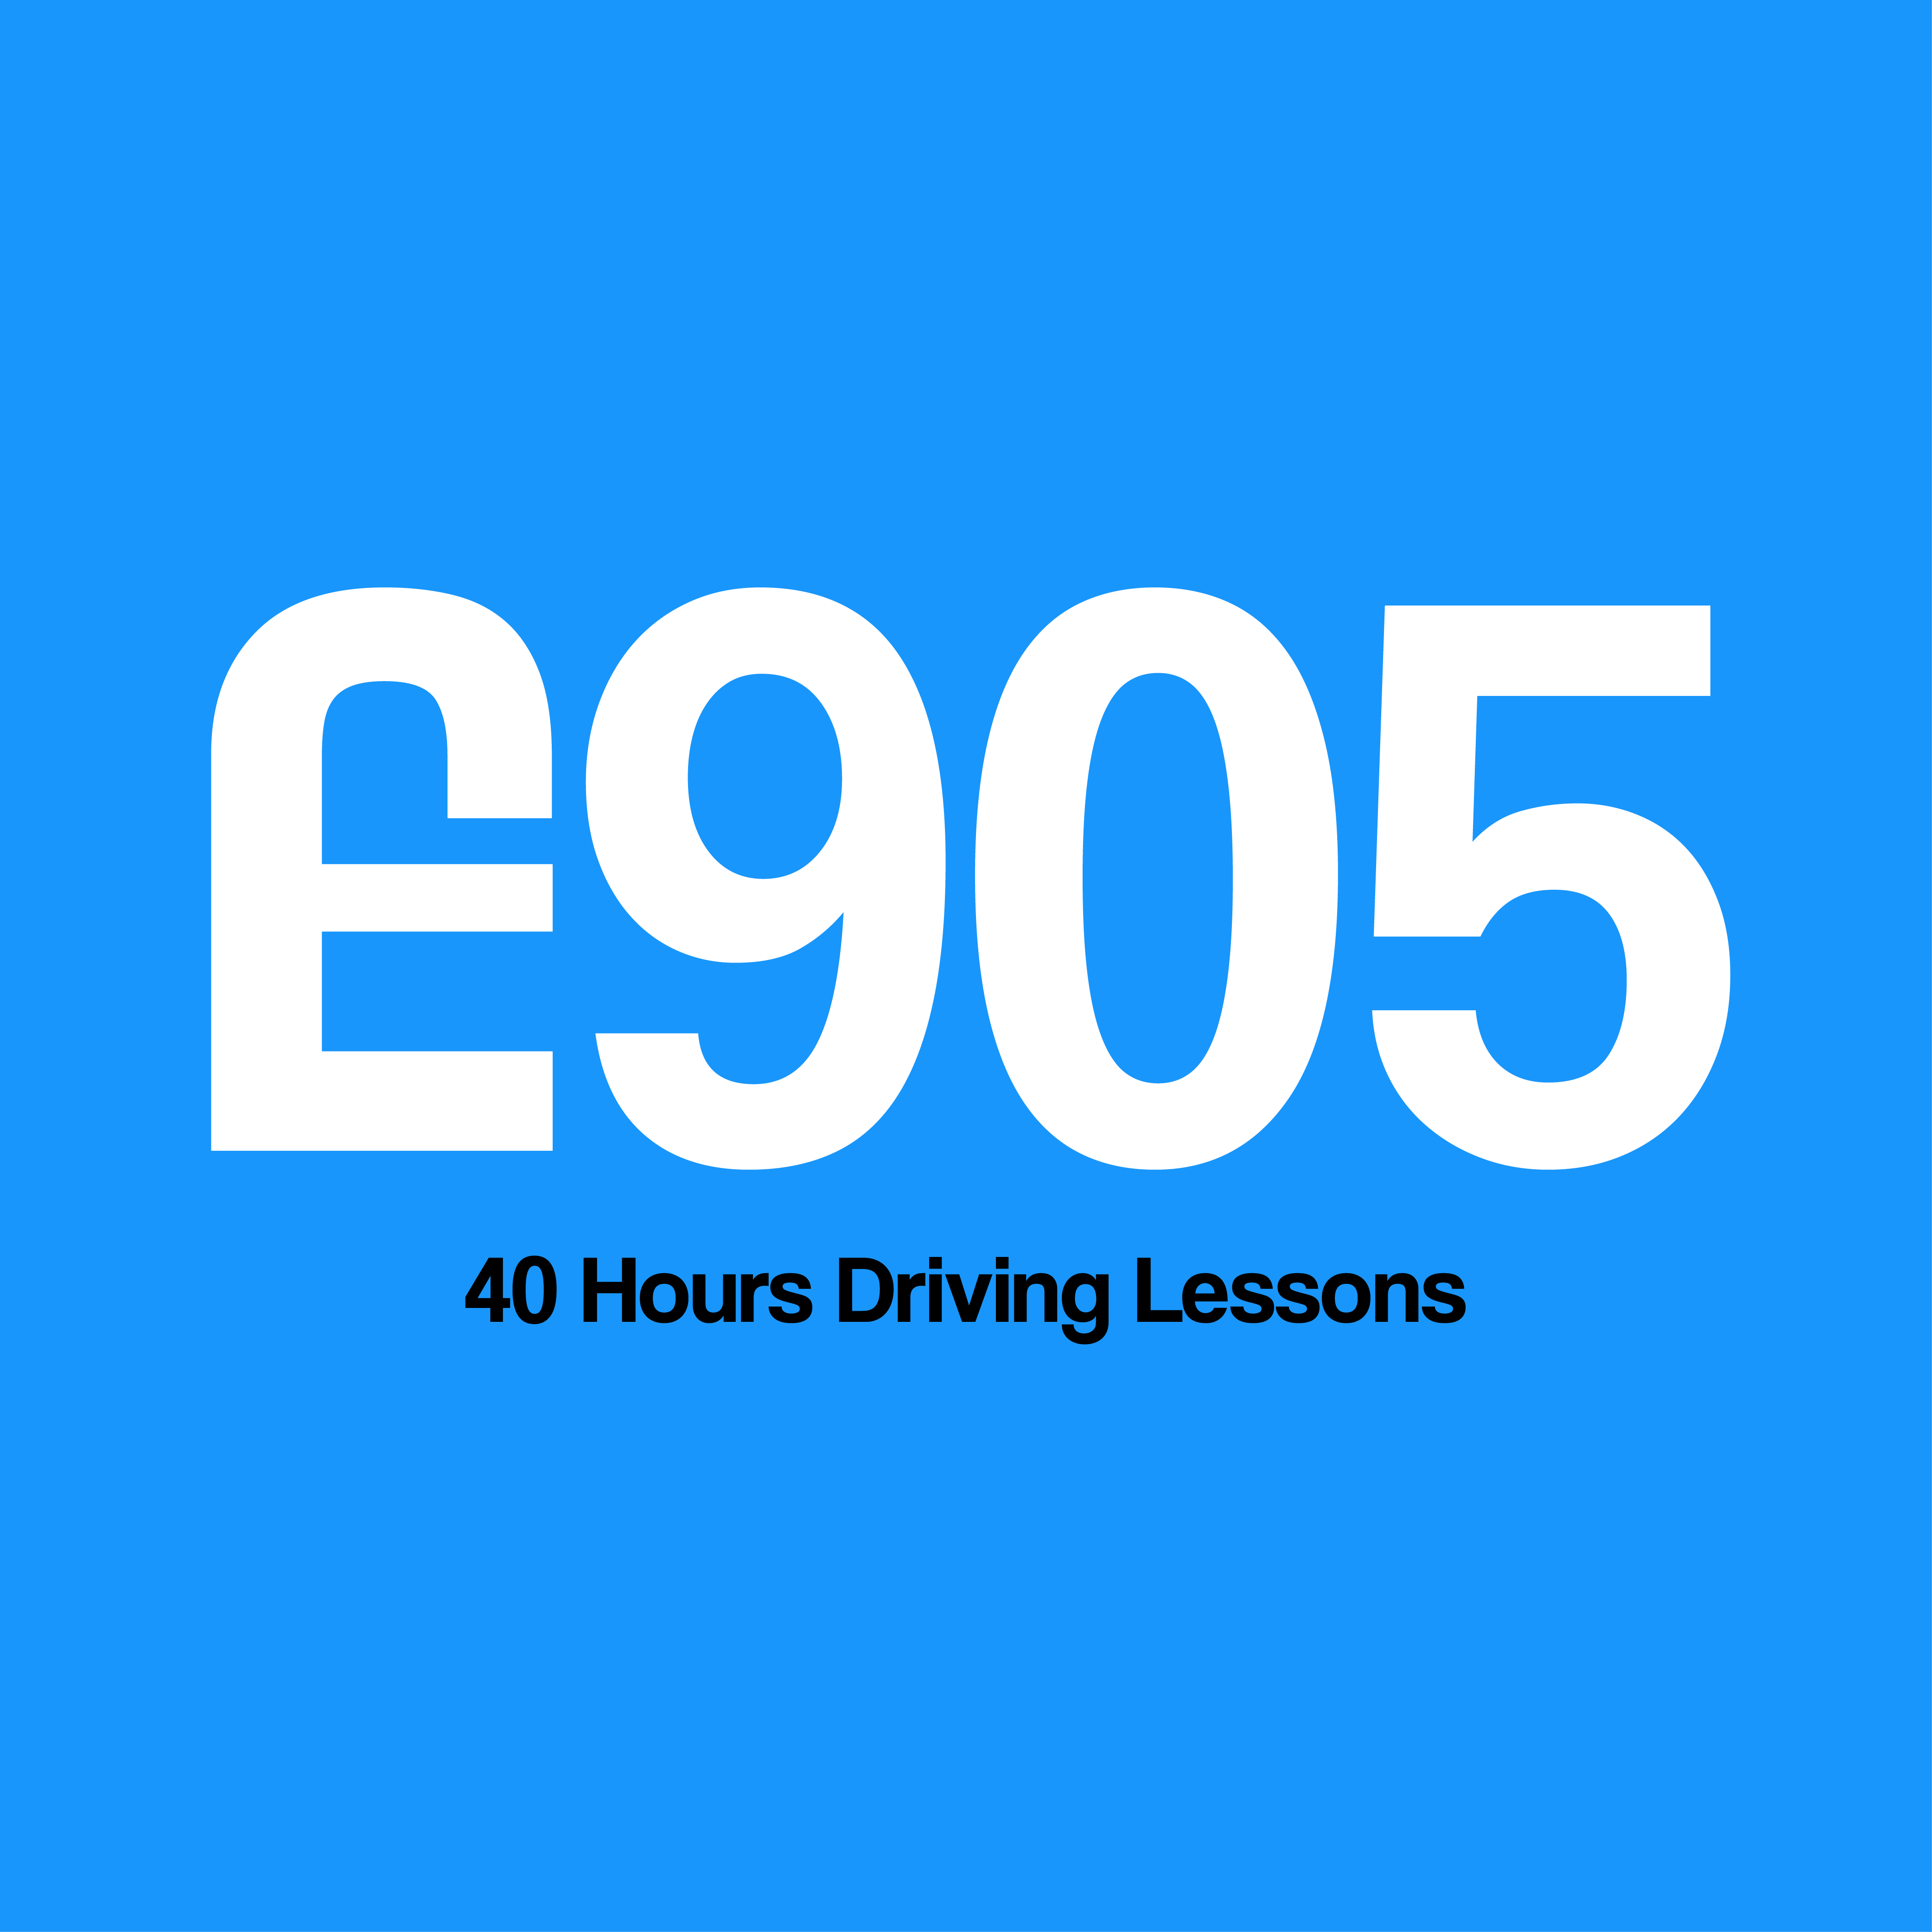 DSM School Of Motoring 40 Hours Driving Lessons